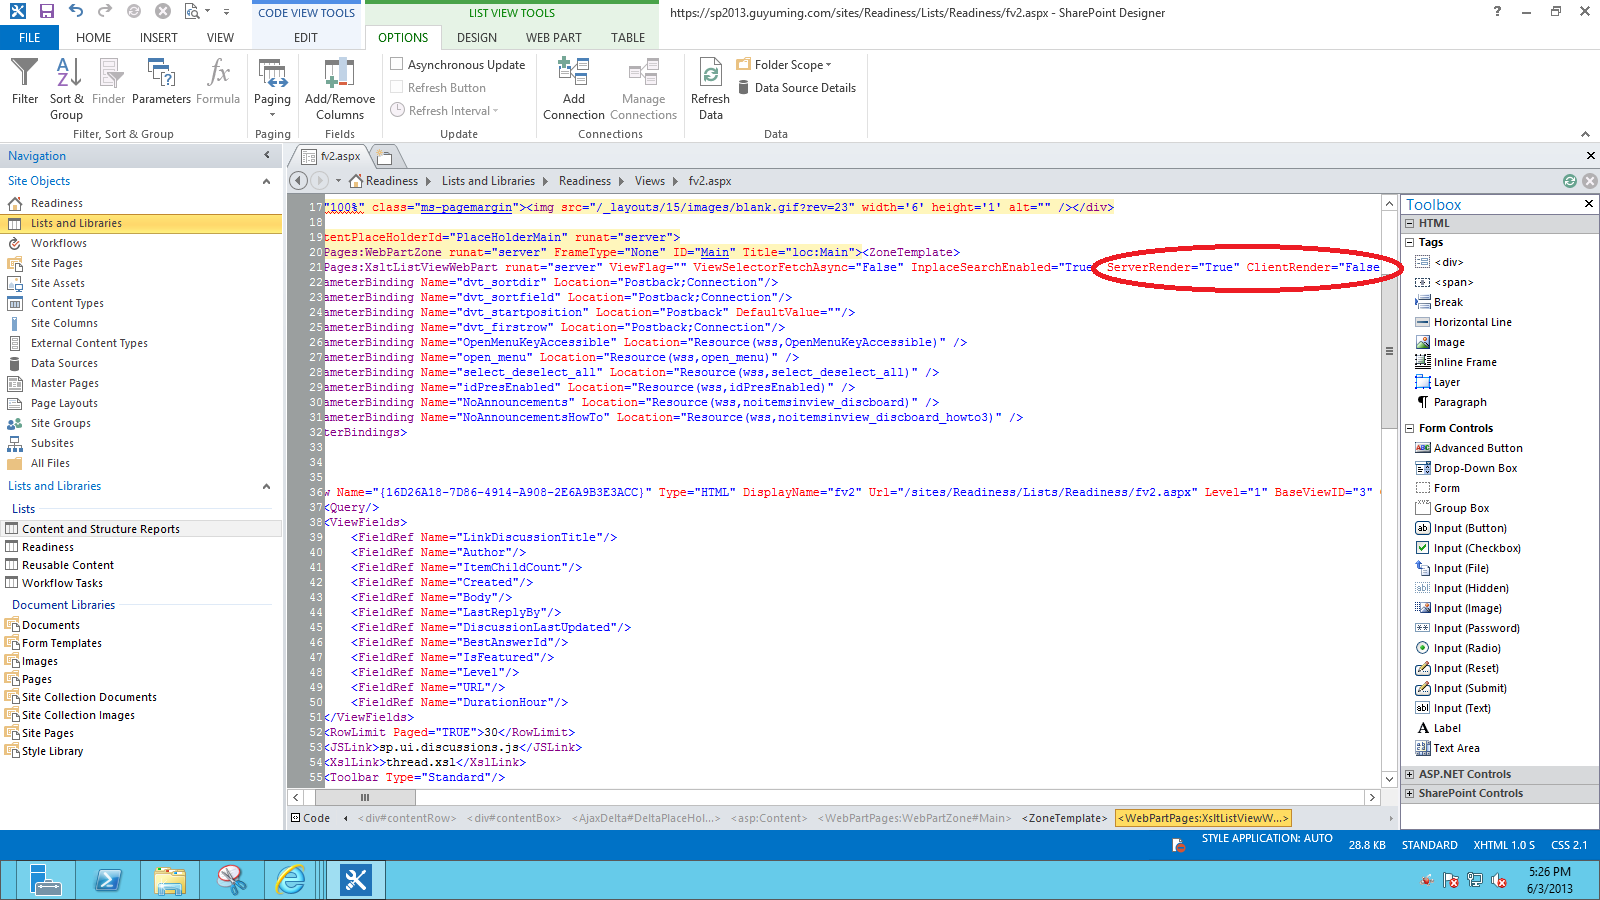 Unable to Customize SharePoint 2013 Discussion Board